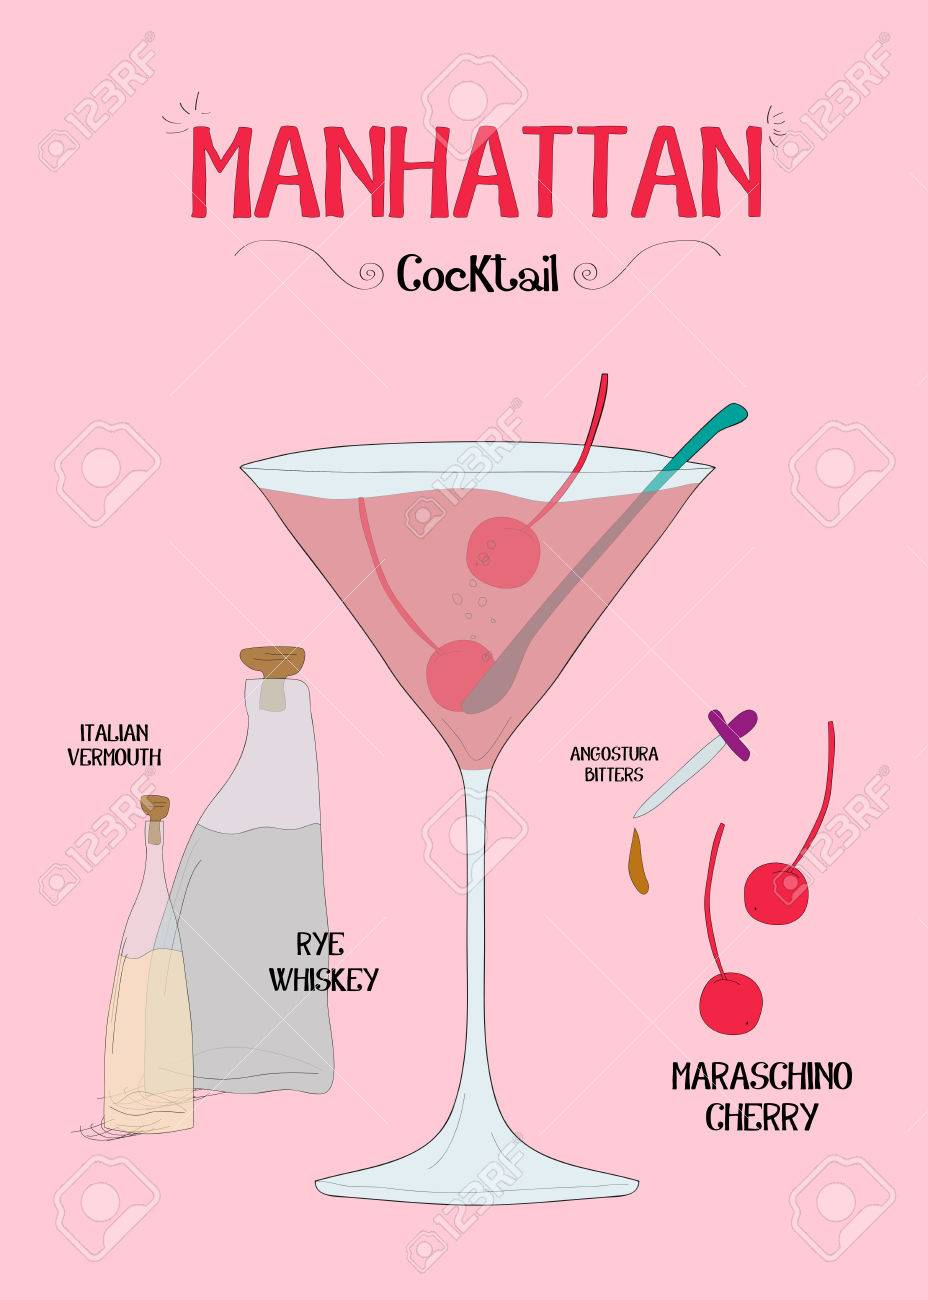 How To Make A Manhattan Cocktail With Ingredients Royalty Free Cliparts Vectors And Stock Illustration Image 60316033